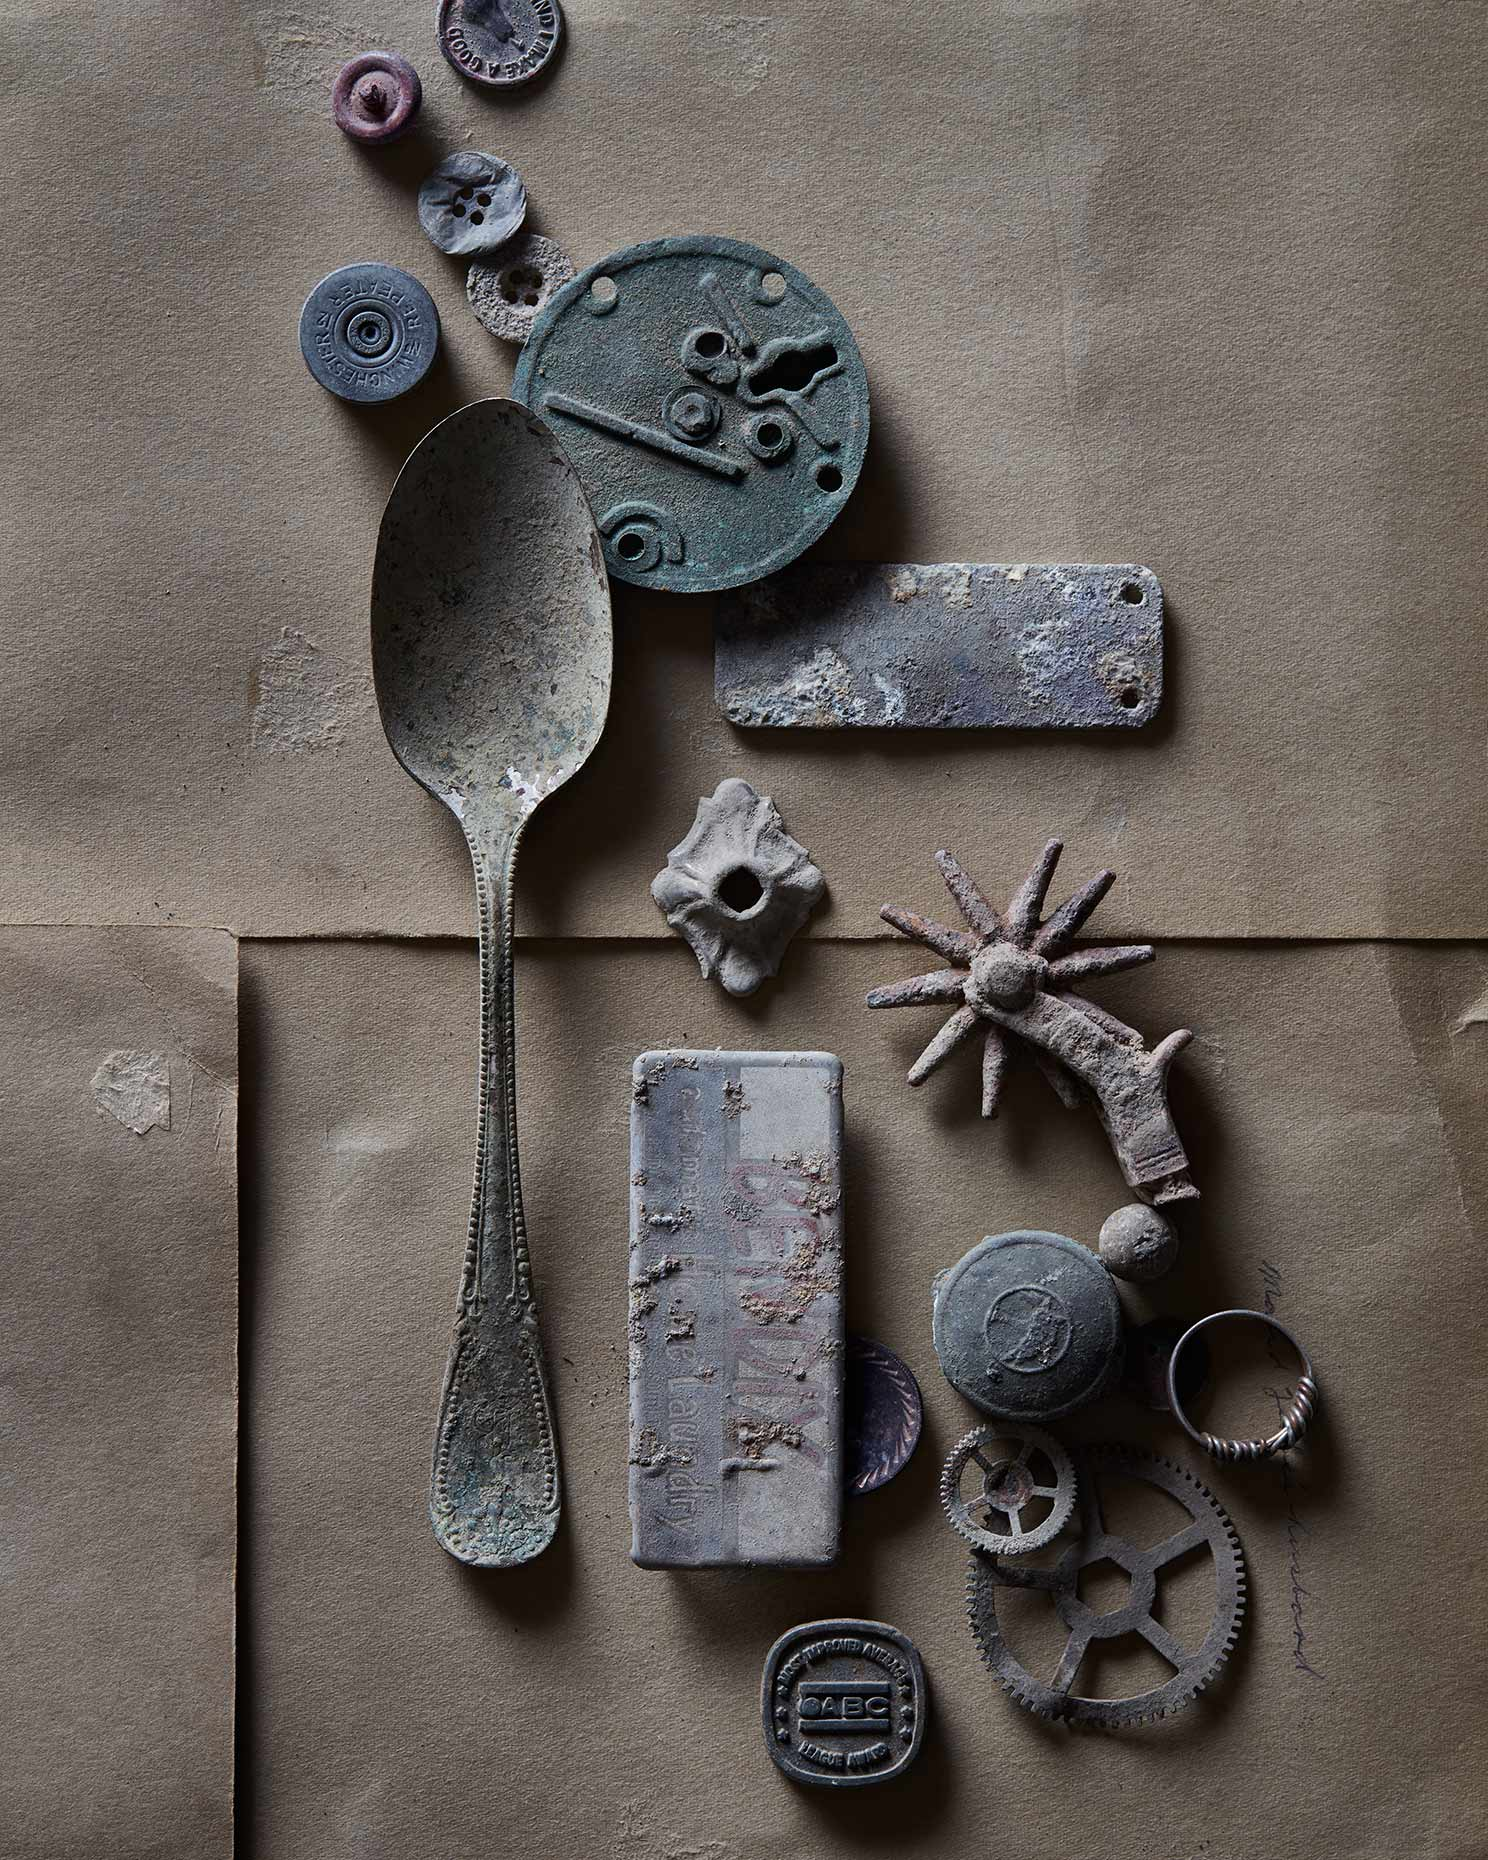 Found objects from metal detector collection on cut paper